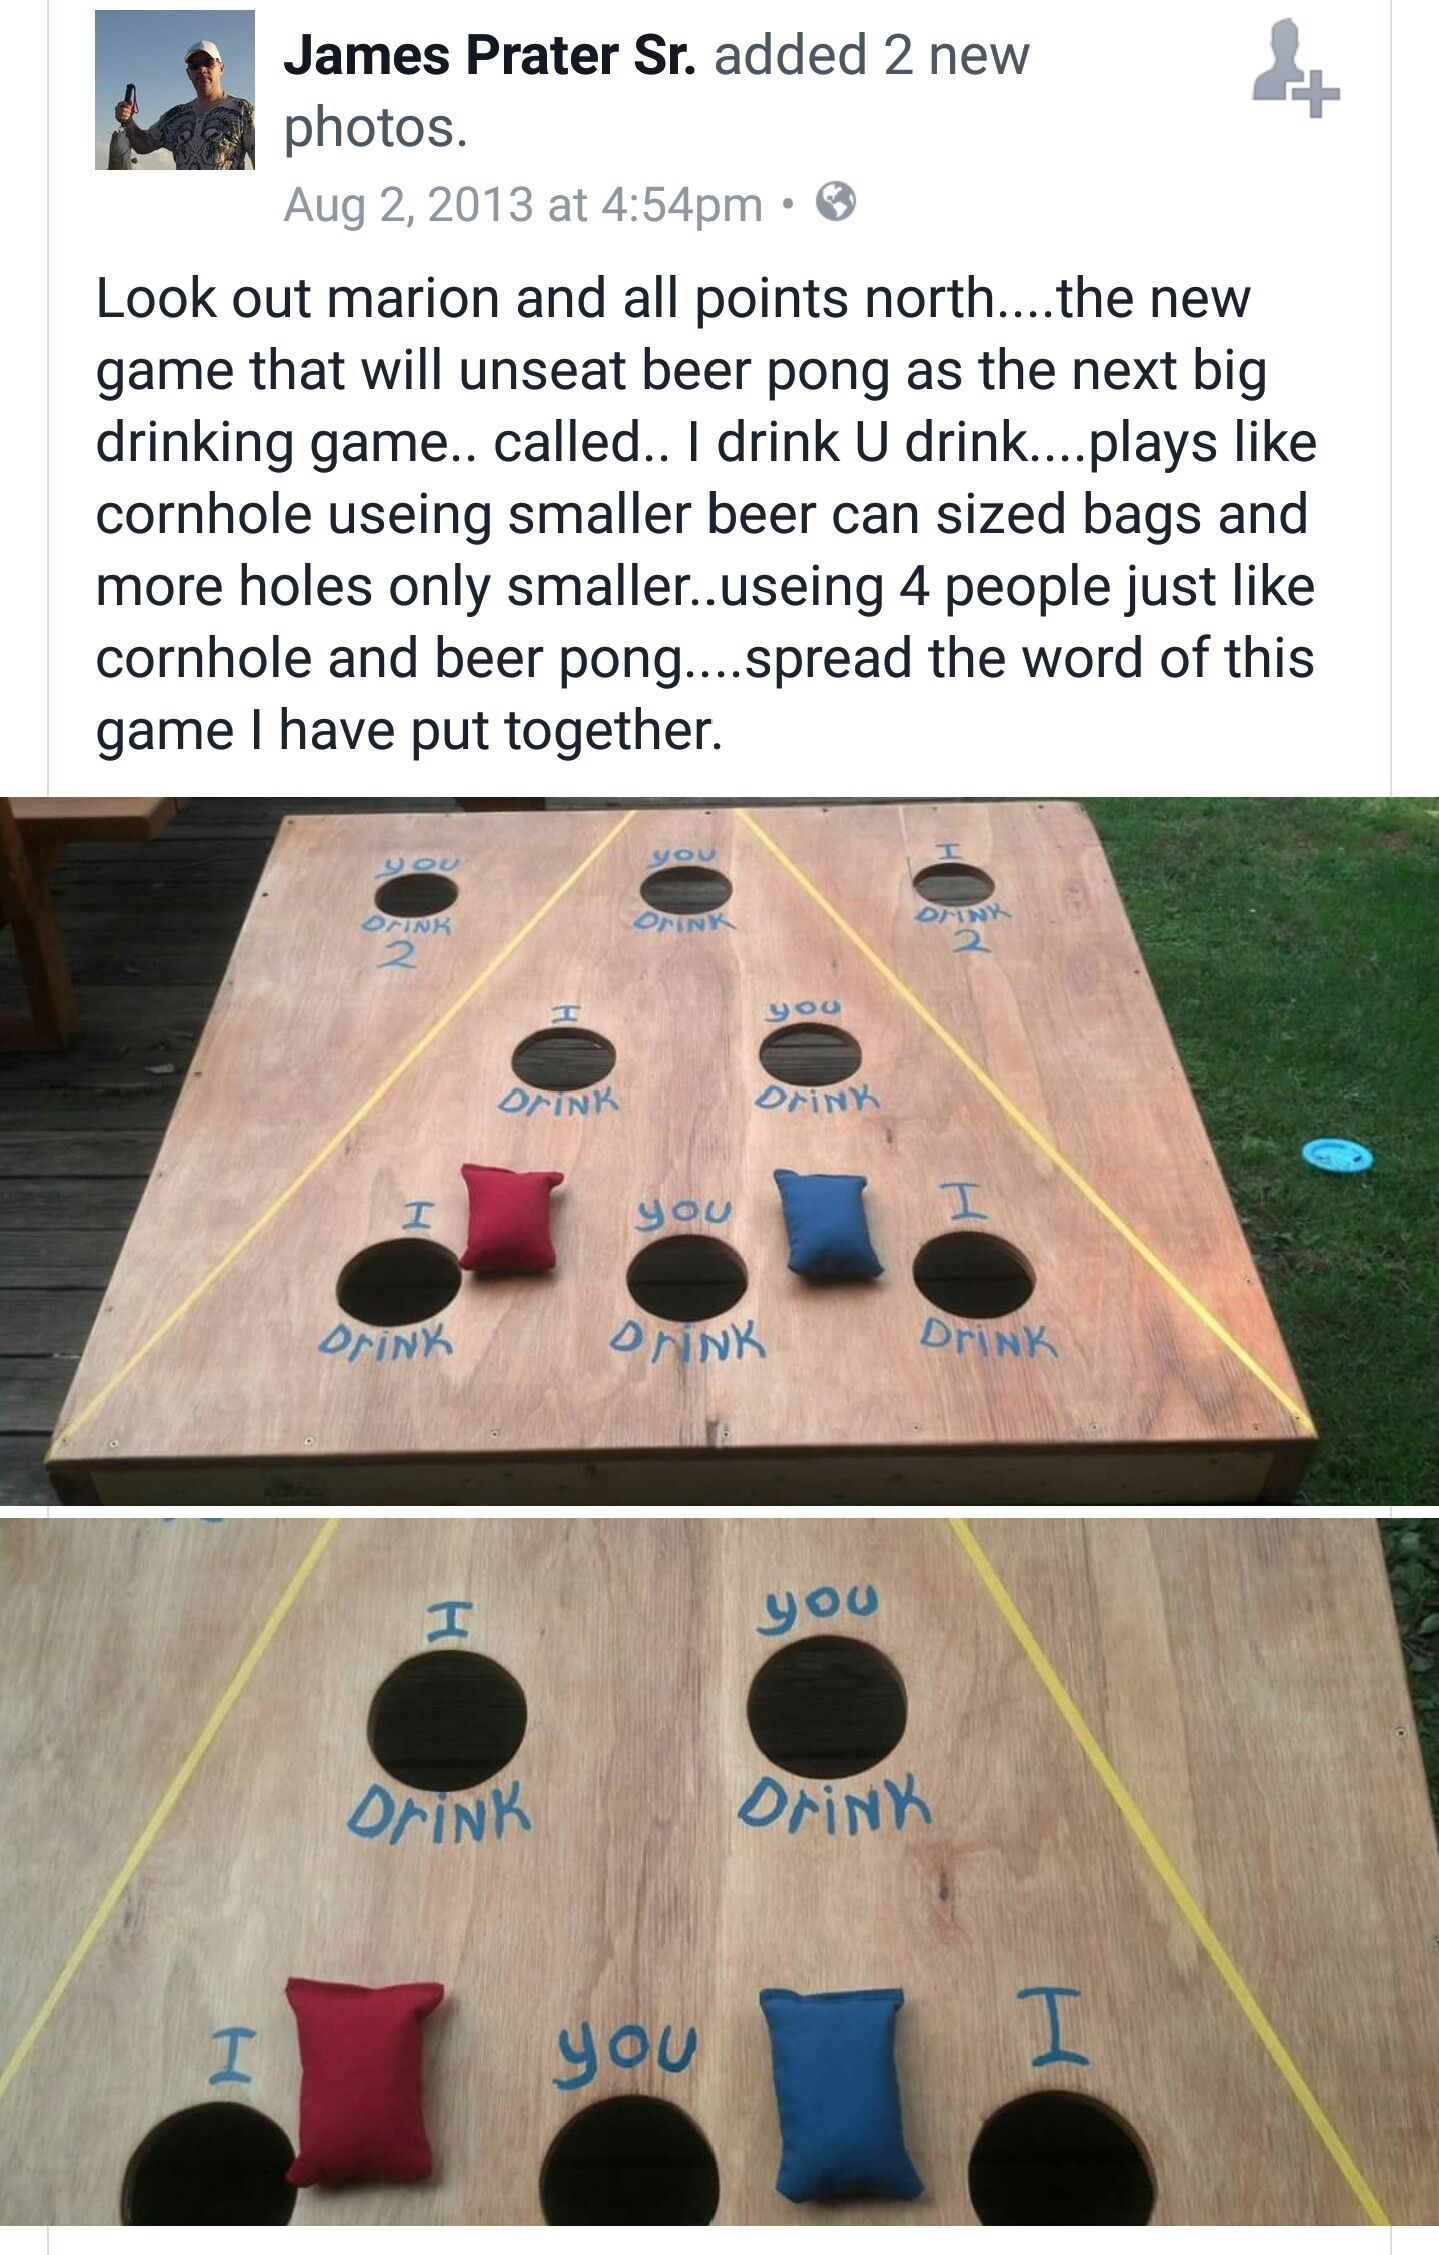 For anyone that wants to make the cornhole drinking game